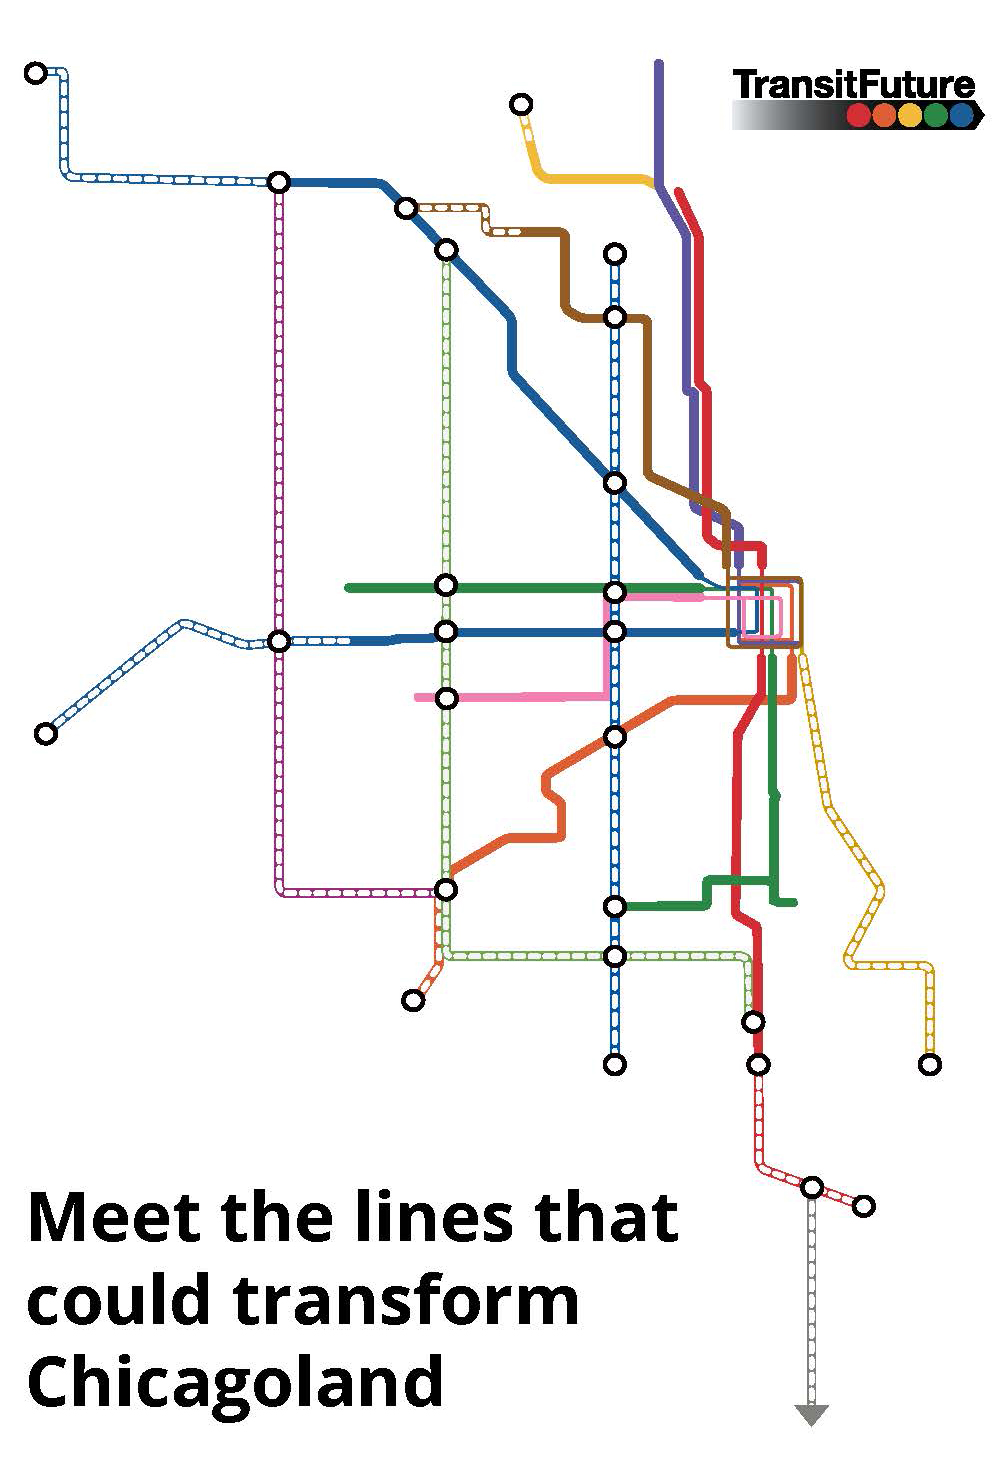 Meet the lines that could transform Chicagoland